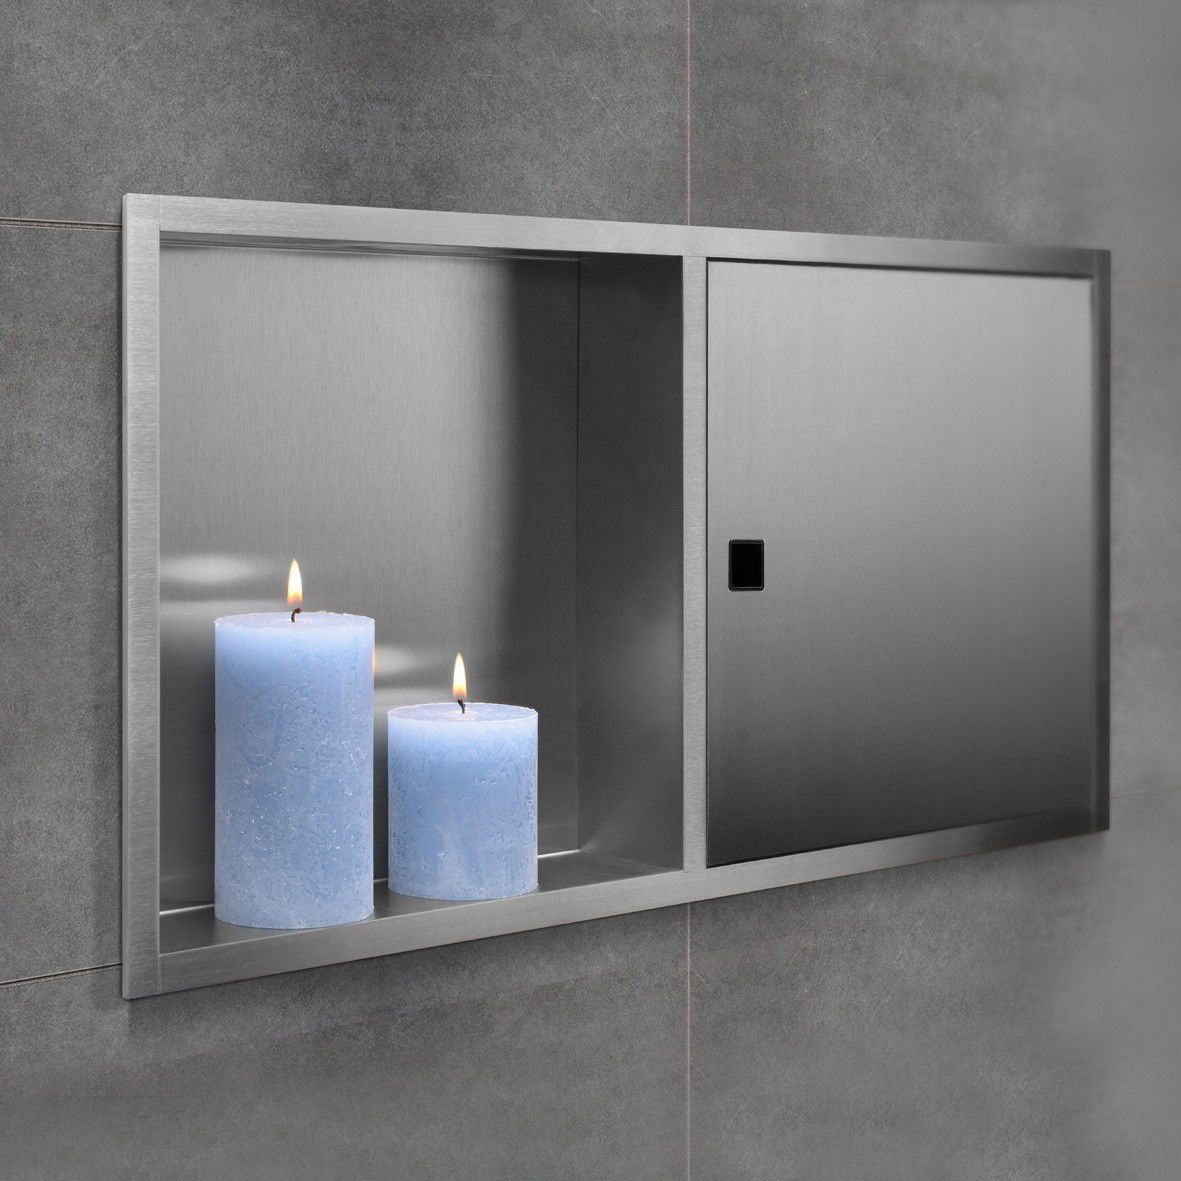 bathroom box bathroom cabinet contemporary stainless steel wall mounted ess container box wall niche with door